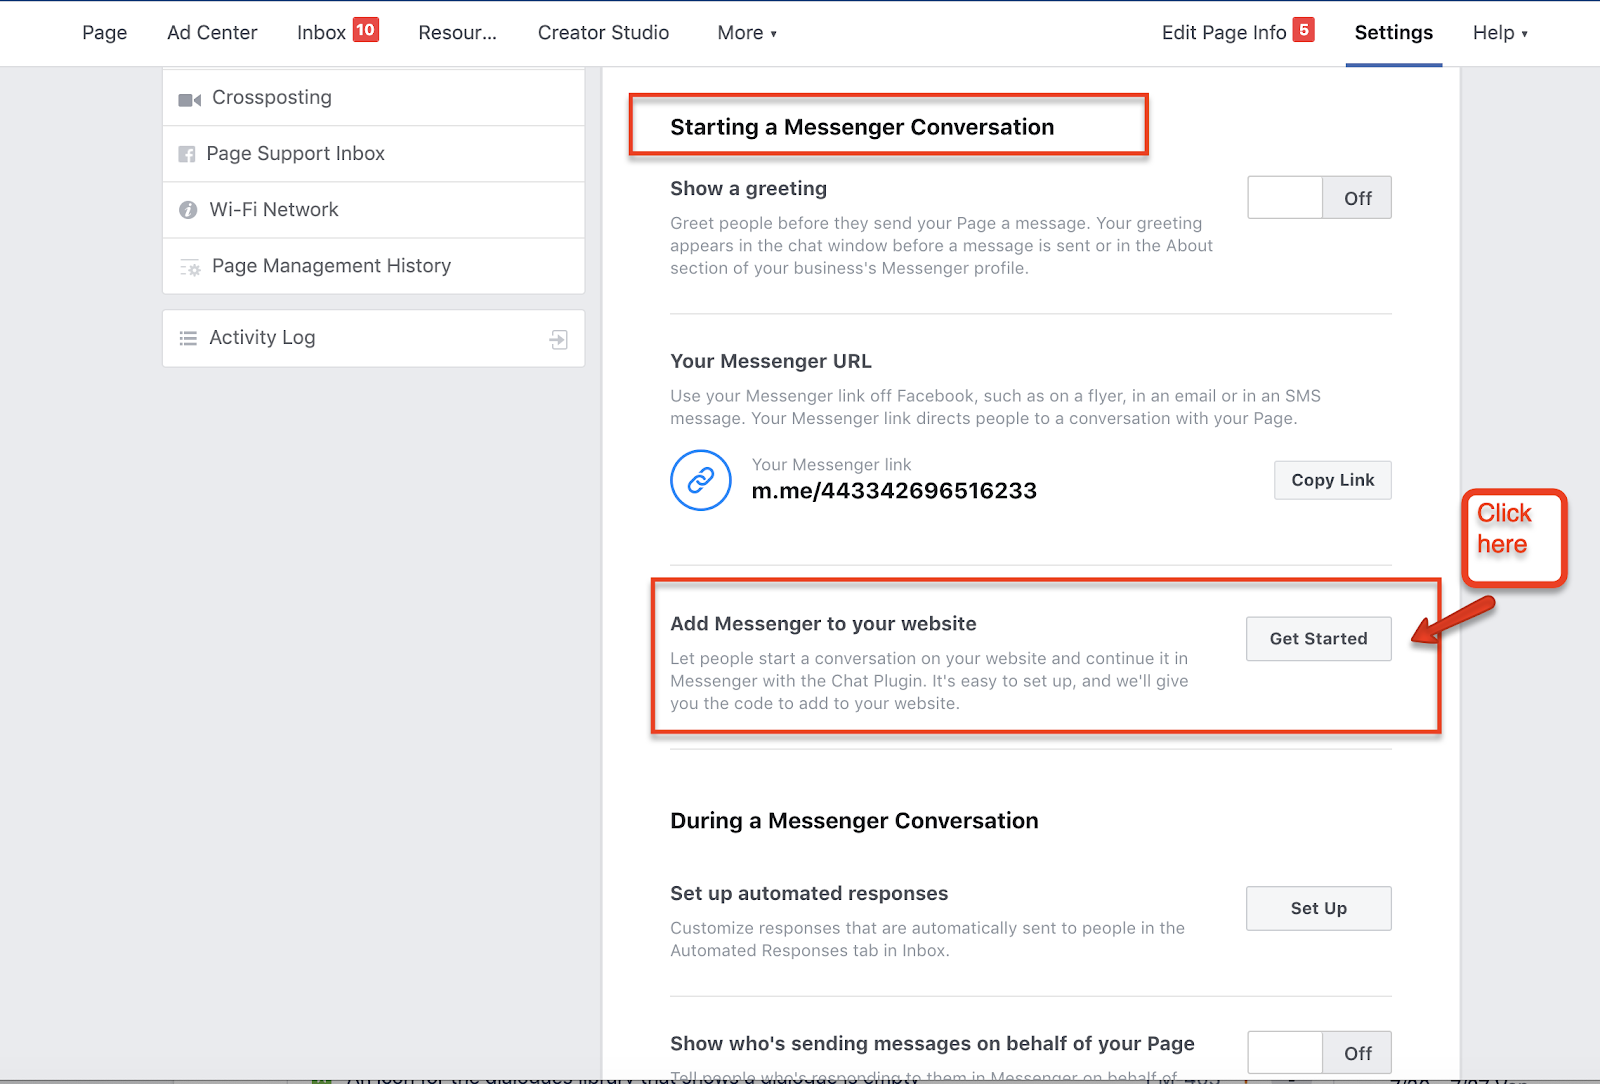 adding Messenger to your website